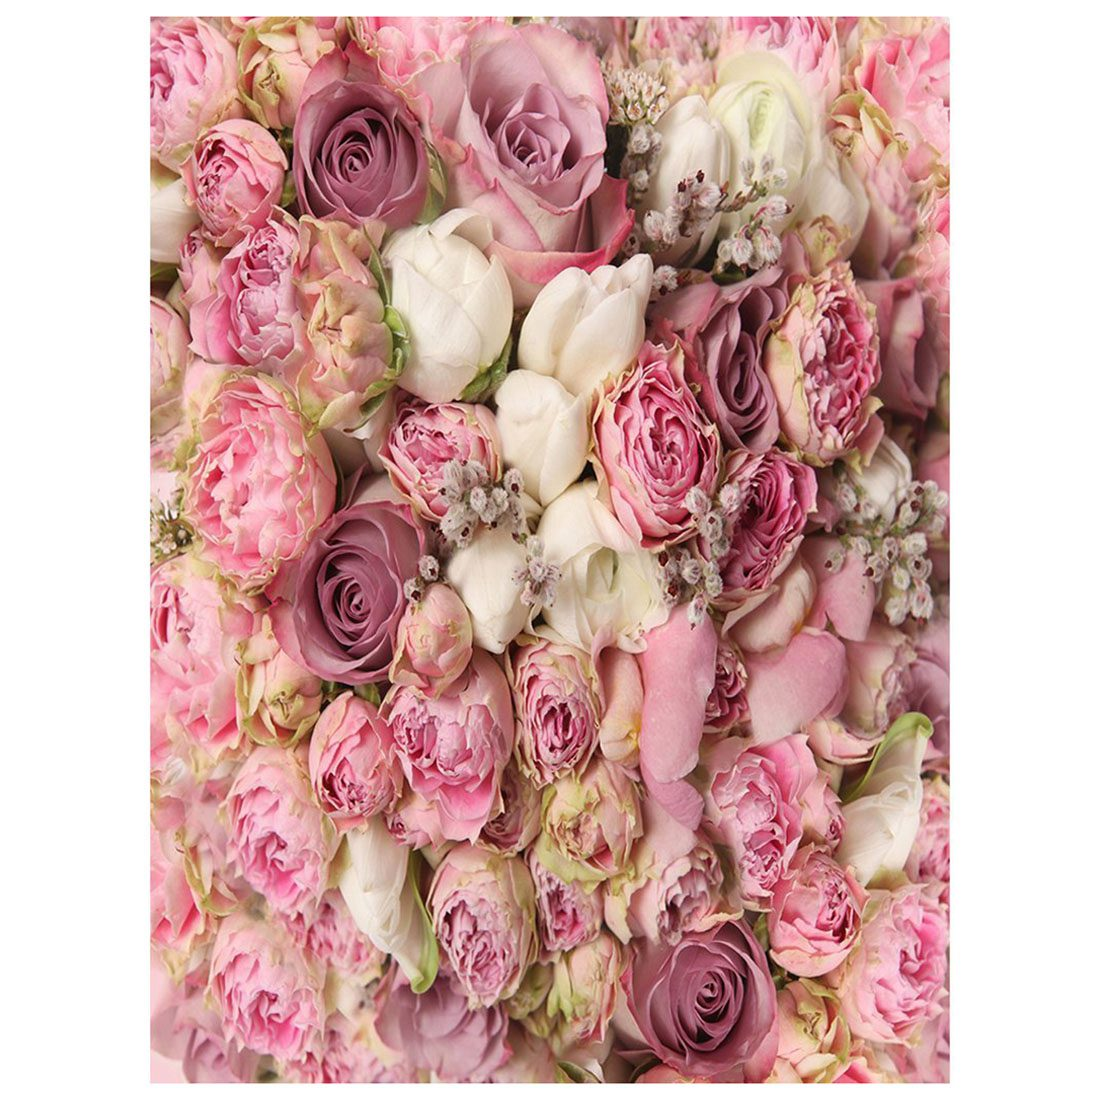 5x7ft Photography Backdrops Wedding Bouquet Pinkwhite Floral Flower